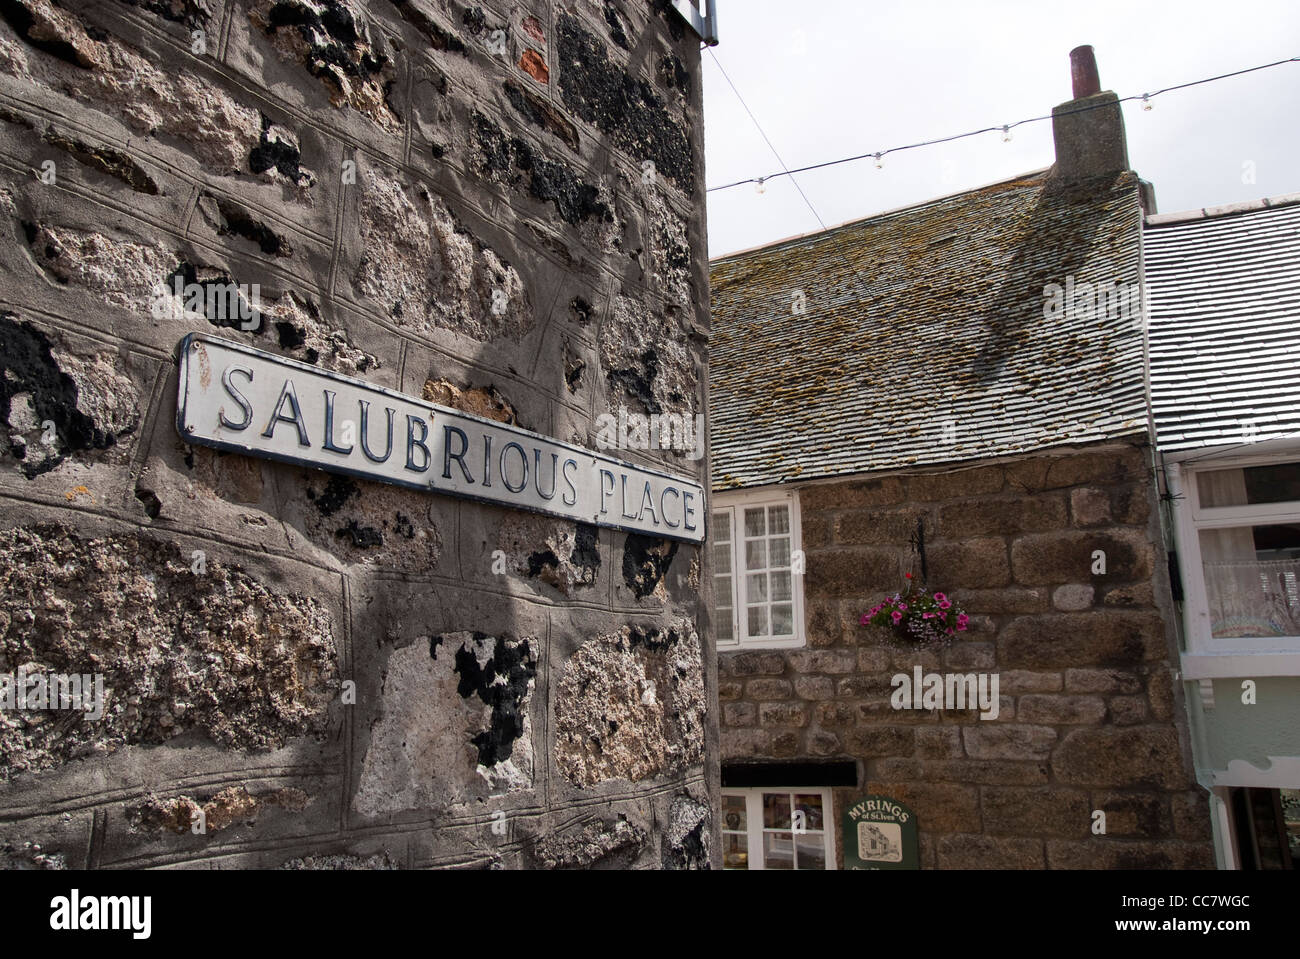 Salubrious Place sign in St.ives Cornwall. - Stock Image